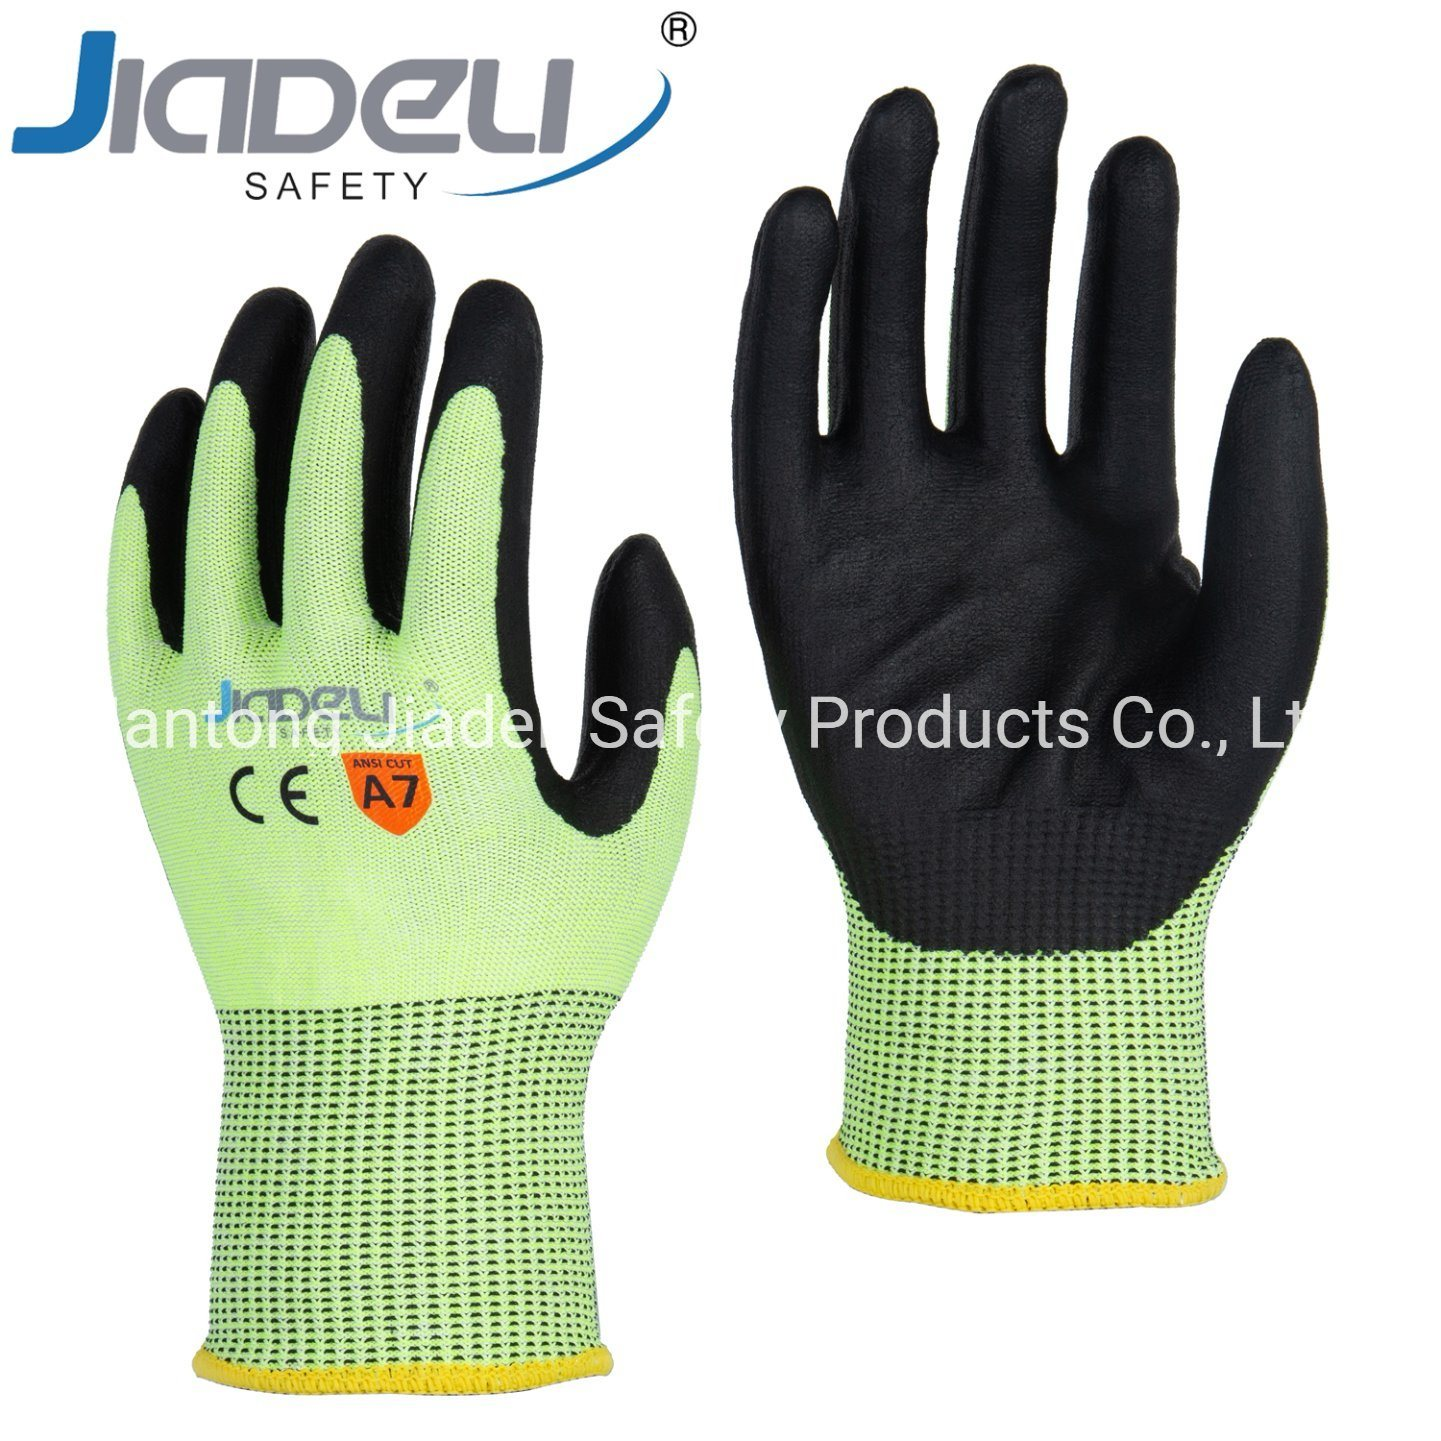 Cut Resistant Level F Work Glove with ANSI Cut Level A7